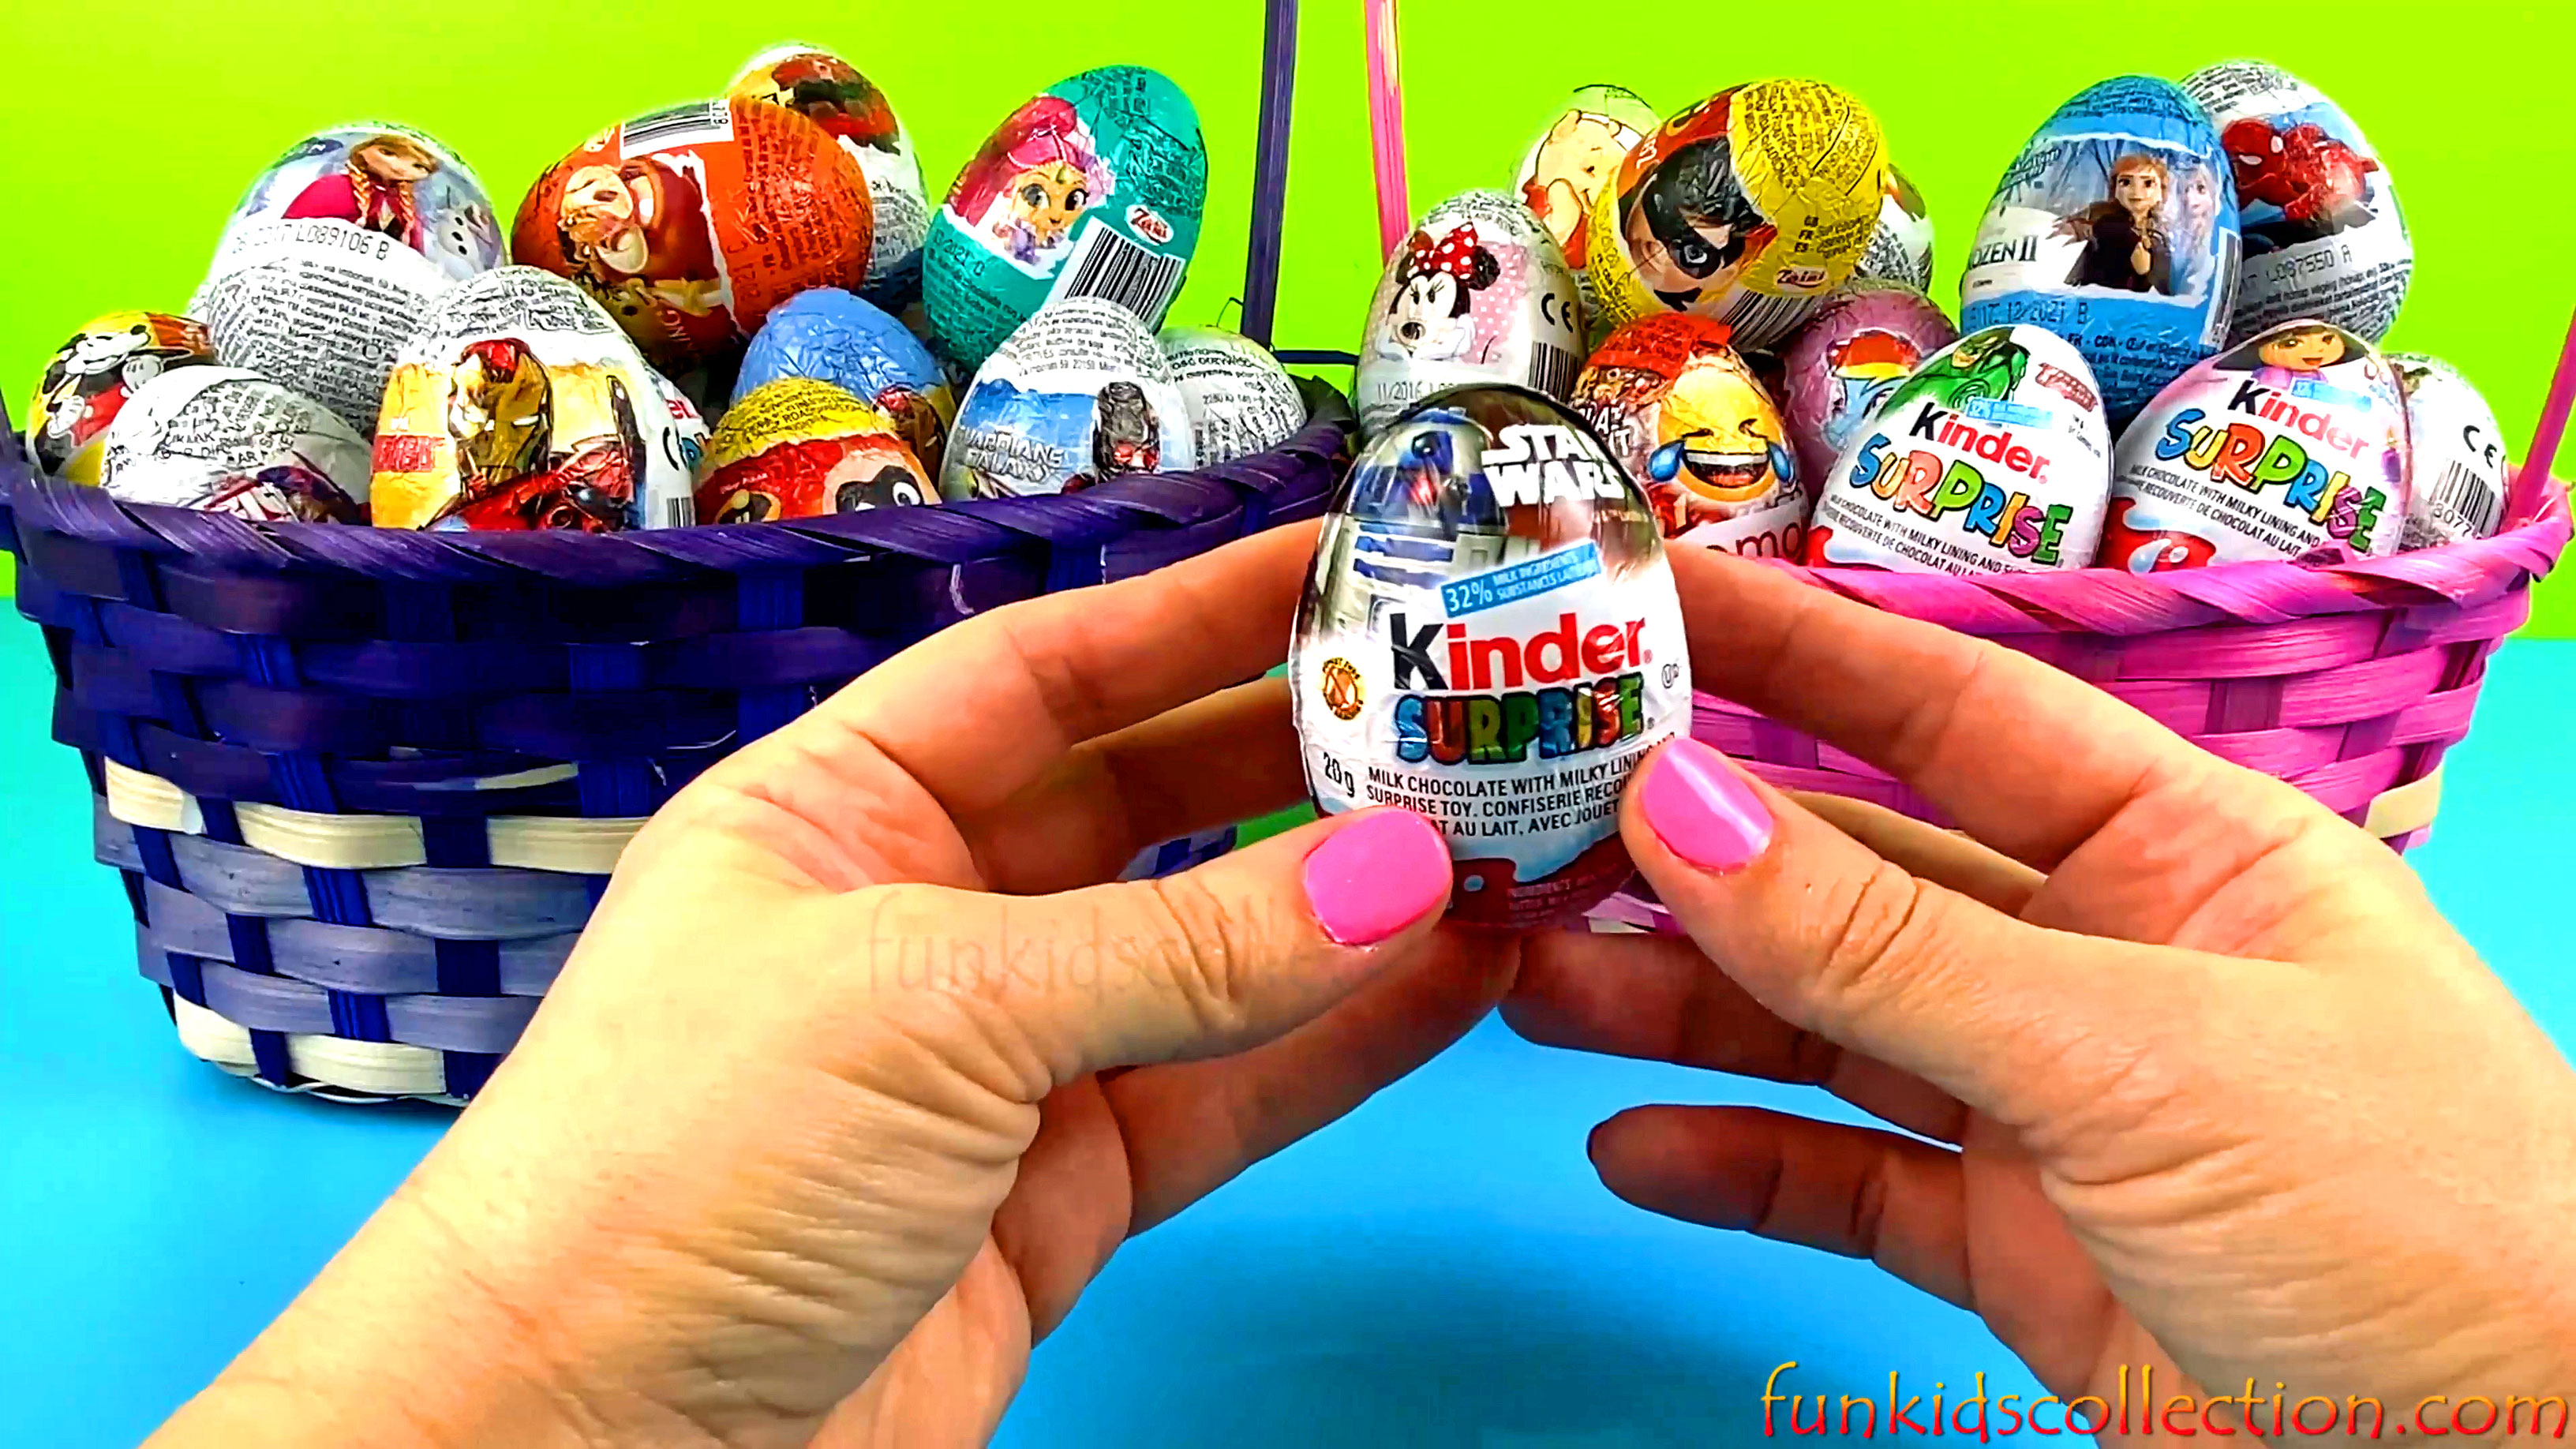 2 Baskets Full Egg Surprises Opening 40 Eggs Surprises of Kinder Egg Surprises and Zaini Egg Surpris